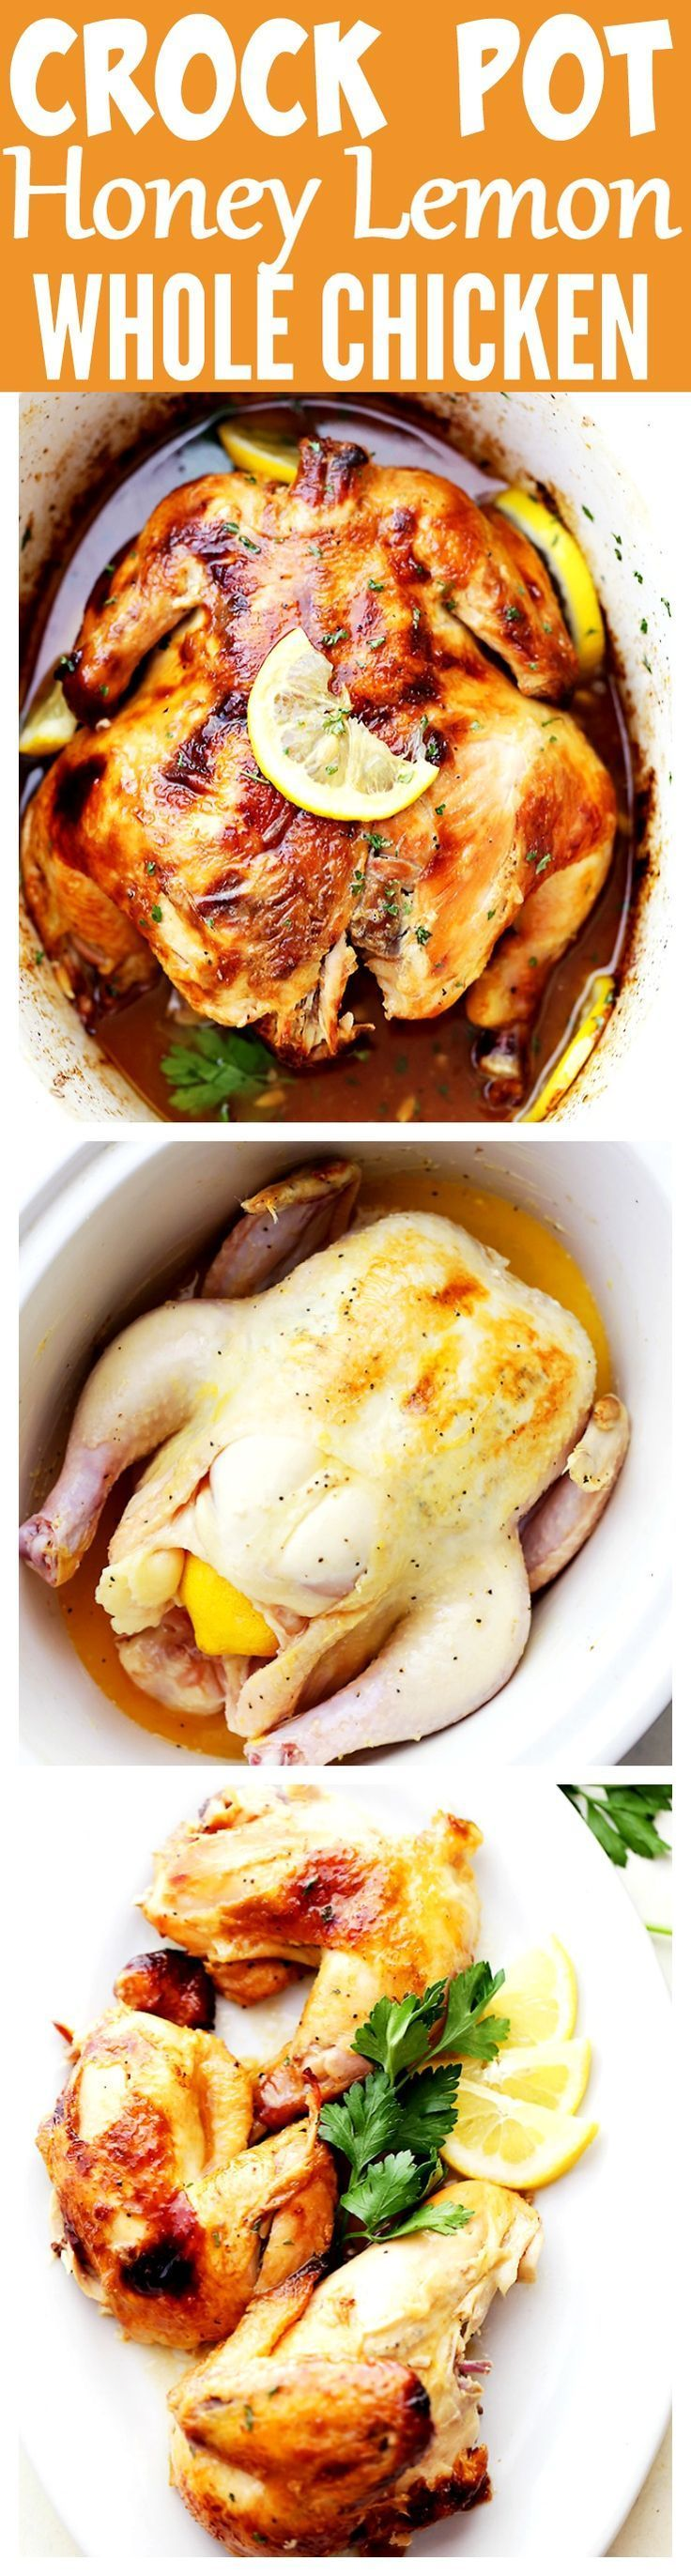 17 ideas about whole chickens on pinterest get the for Chicken recipes in crock pot healthy